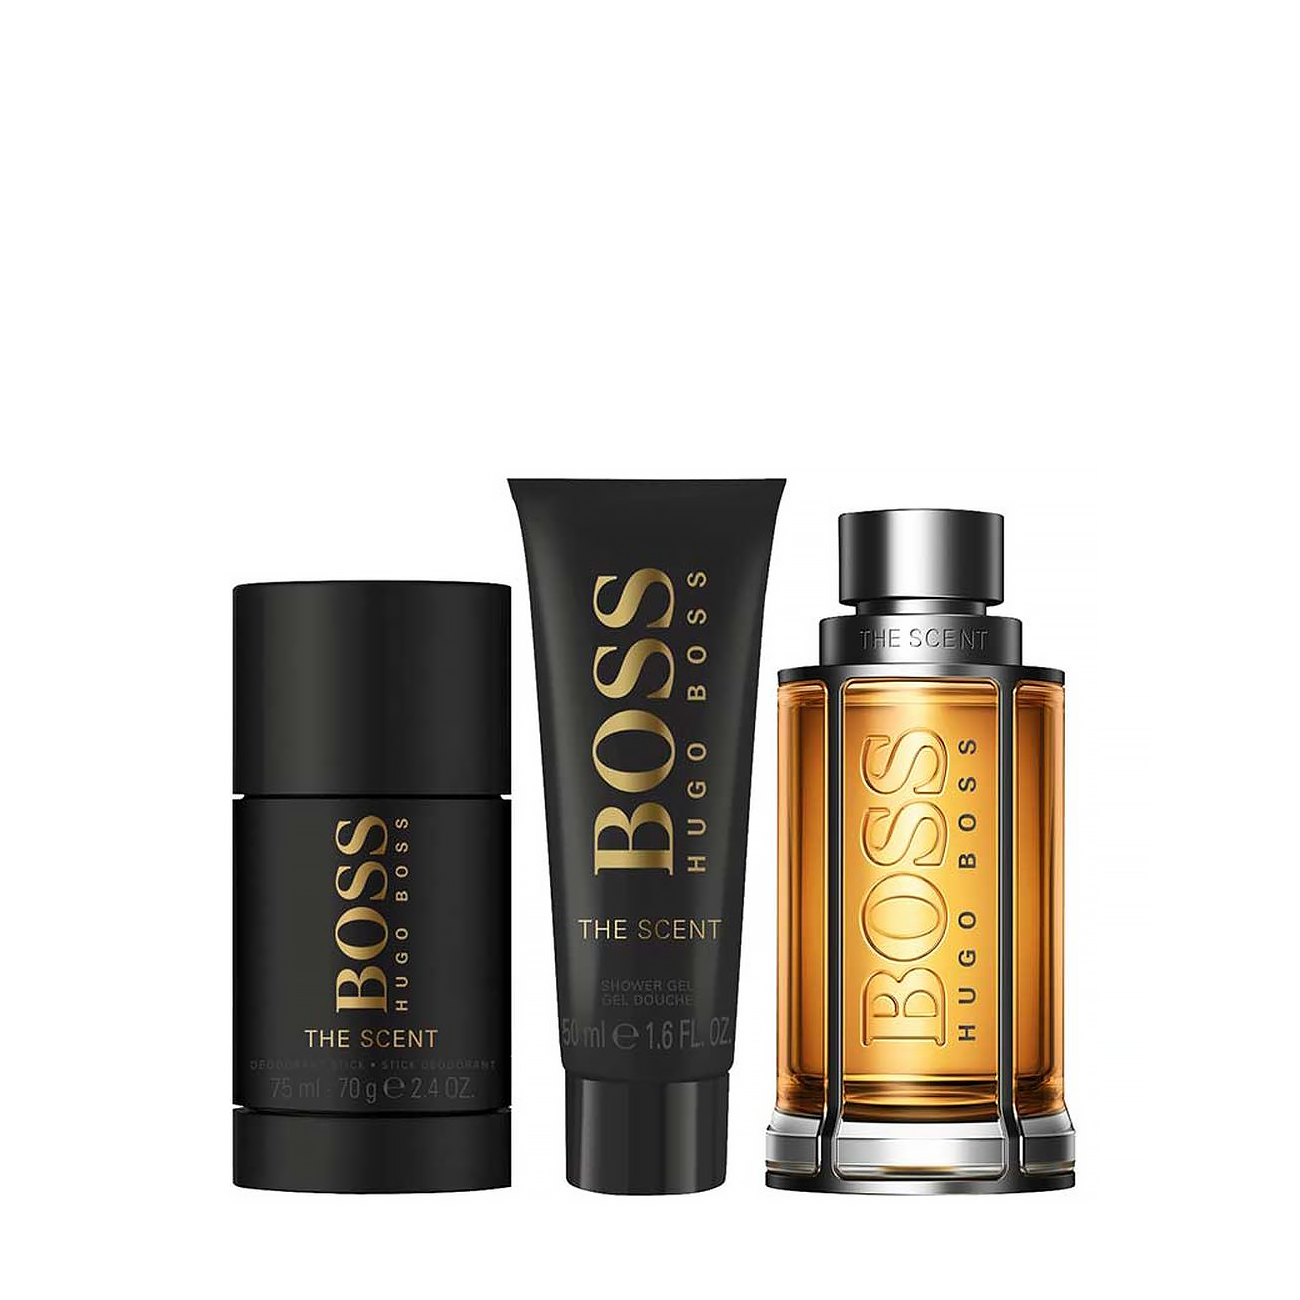 THE SCENT FOR HIM SET 225ml